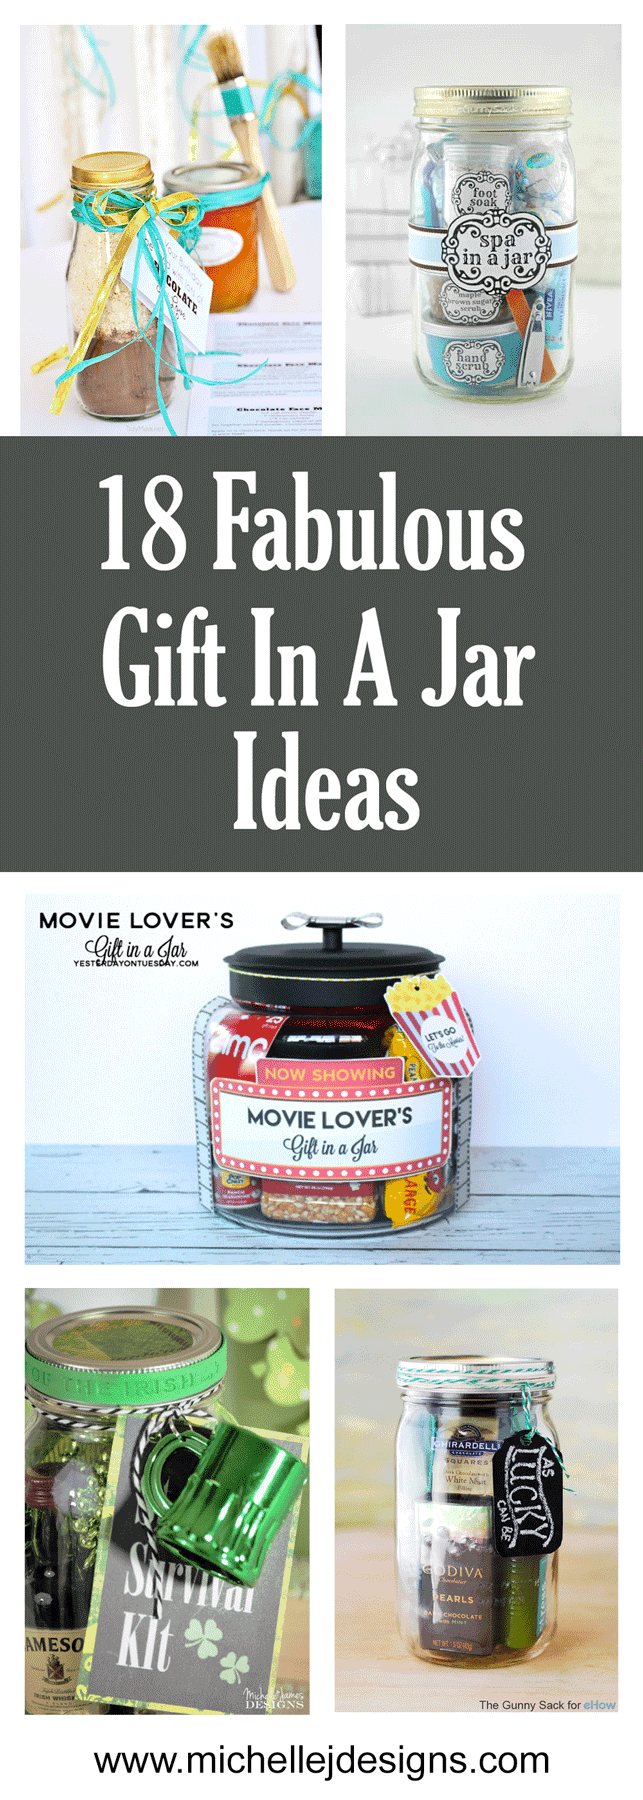 A collage of 5 of the 18 fabulous gift in a jar idea.